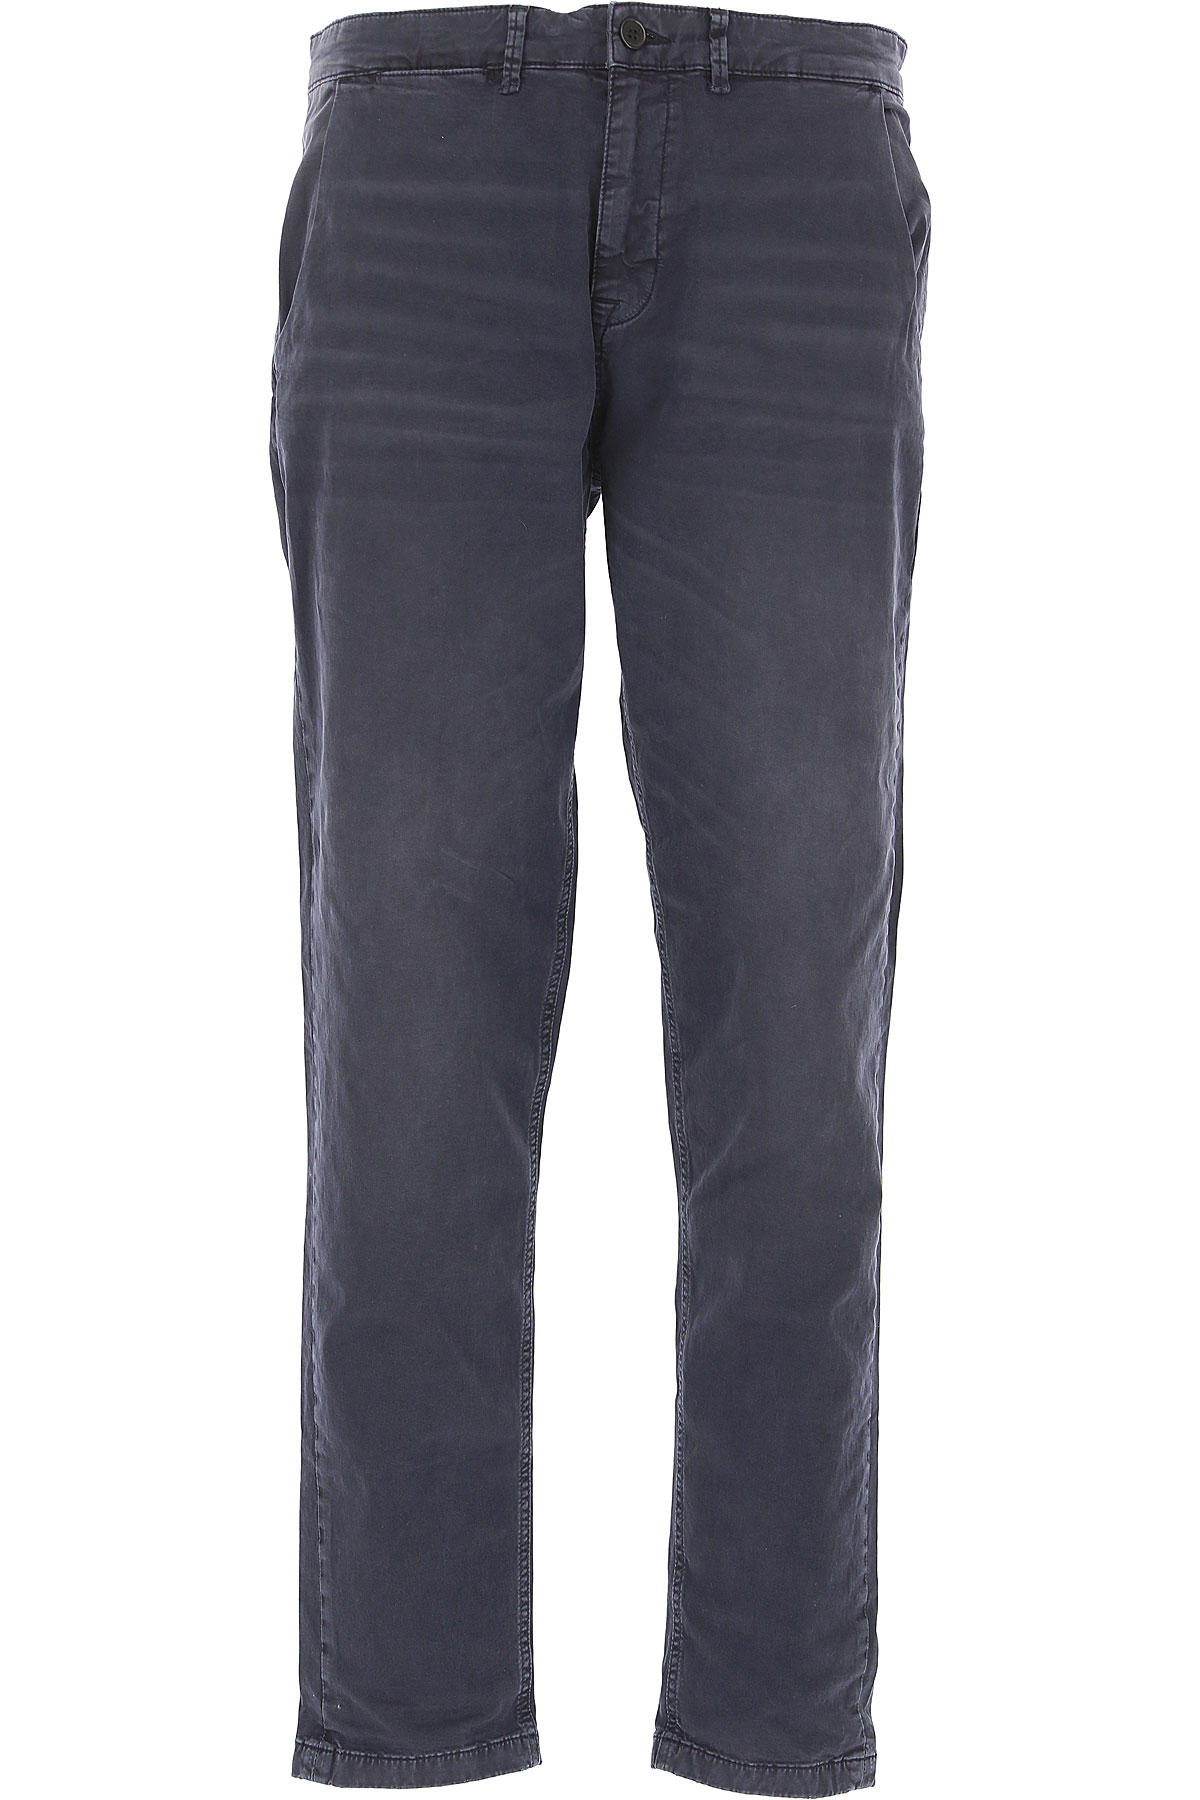 Selected Pants for Men On Sale, Navy Blue, Cotton, 2019, 32 33 34 36 38